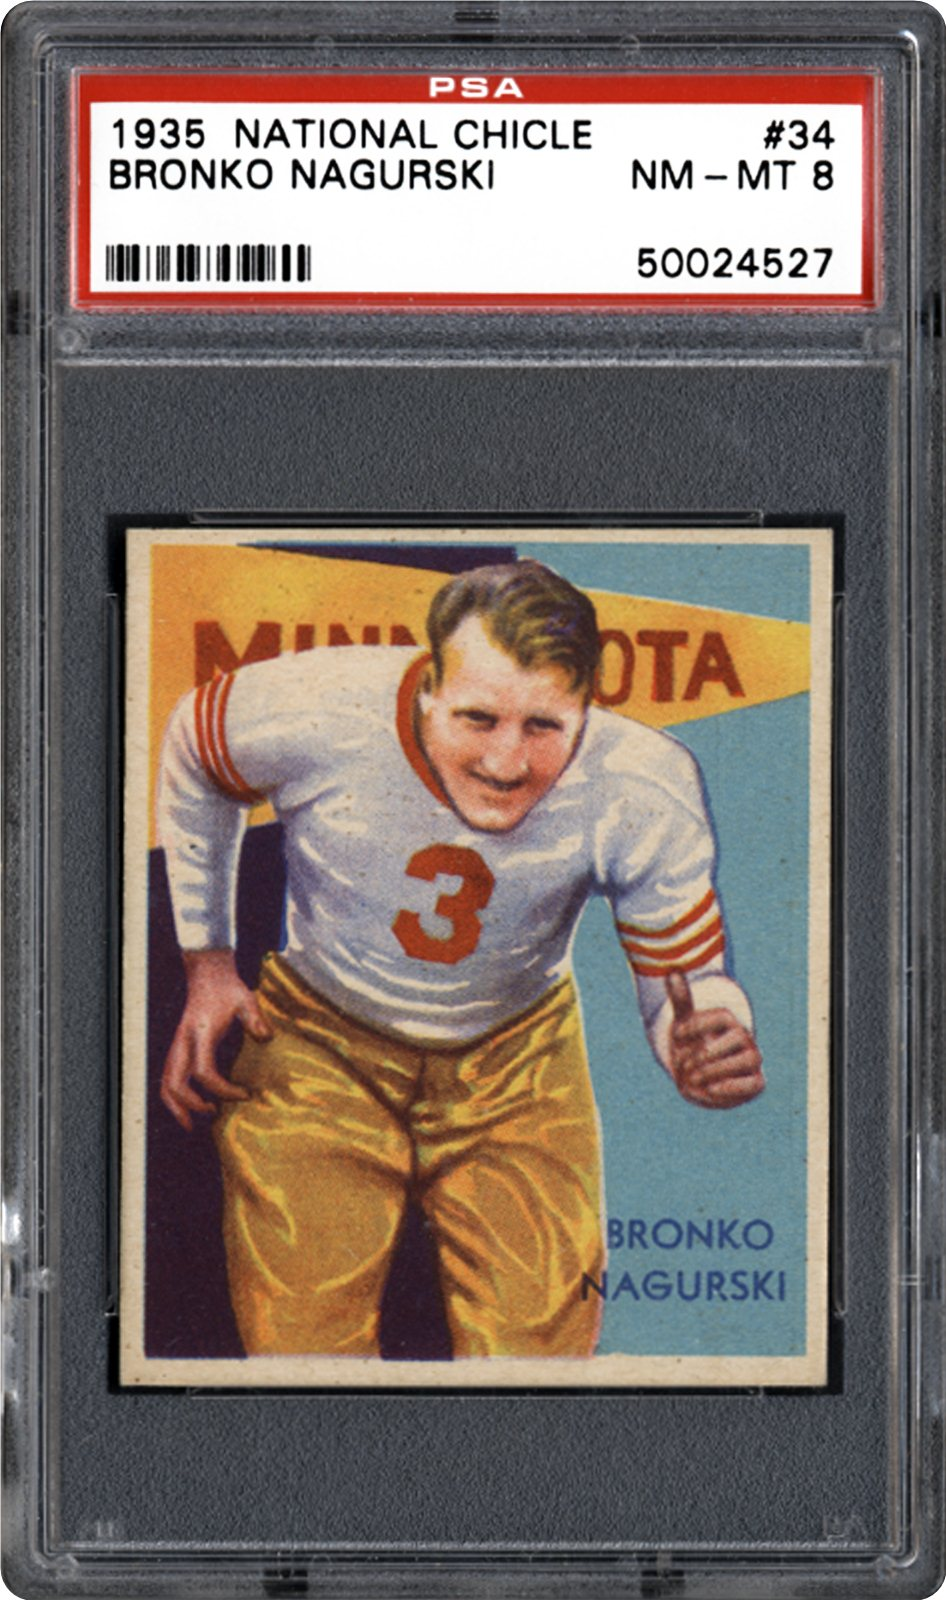 1935 National Chicle 34 Bronko Nagurski